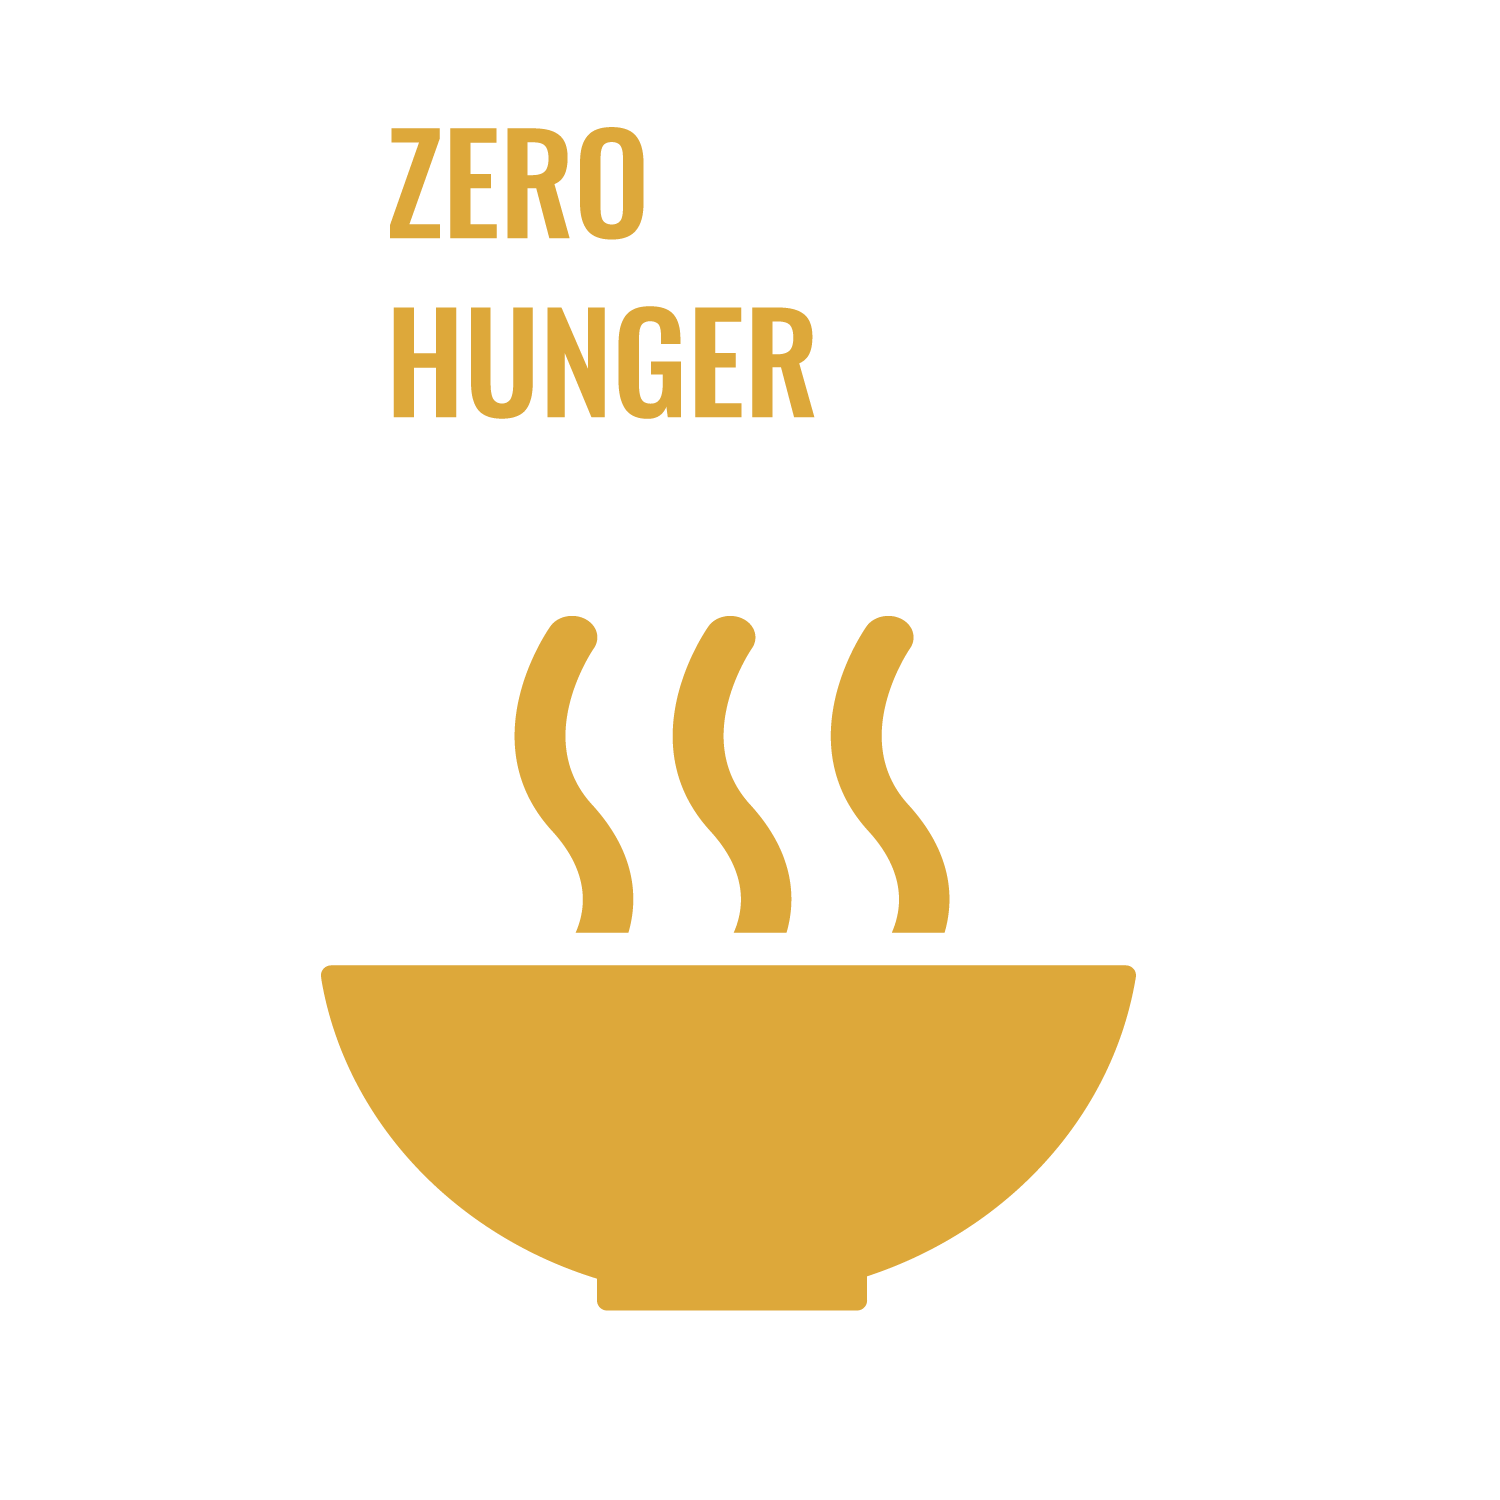 ZERO HUNGER BY DESIGN: Building-Integrated Food Production